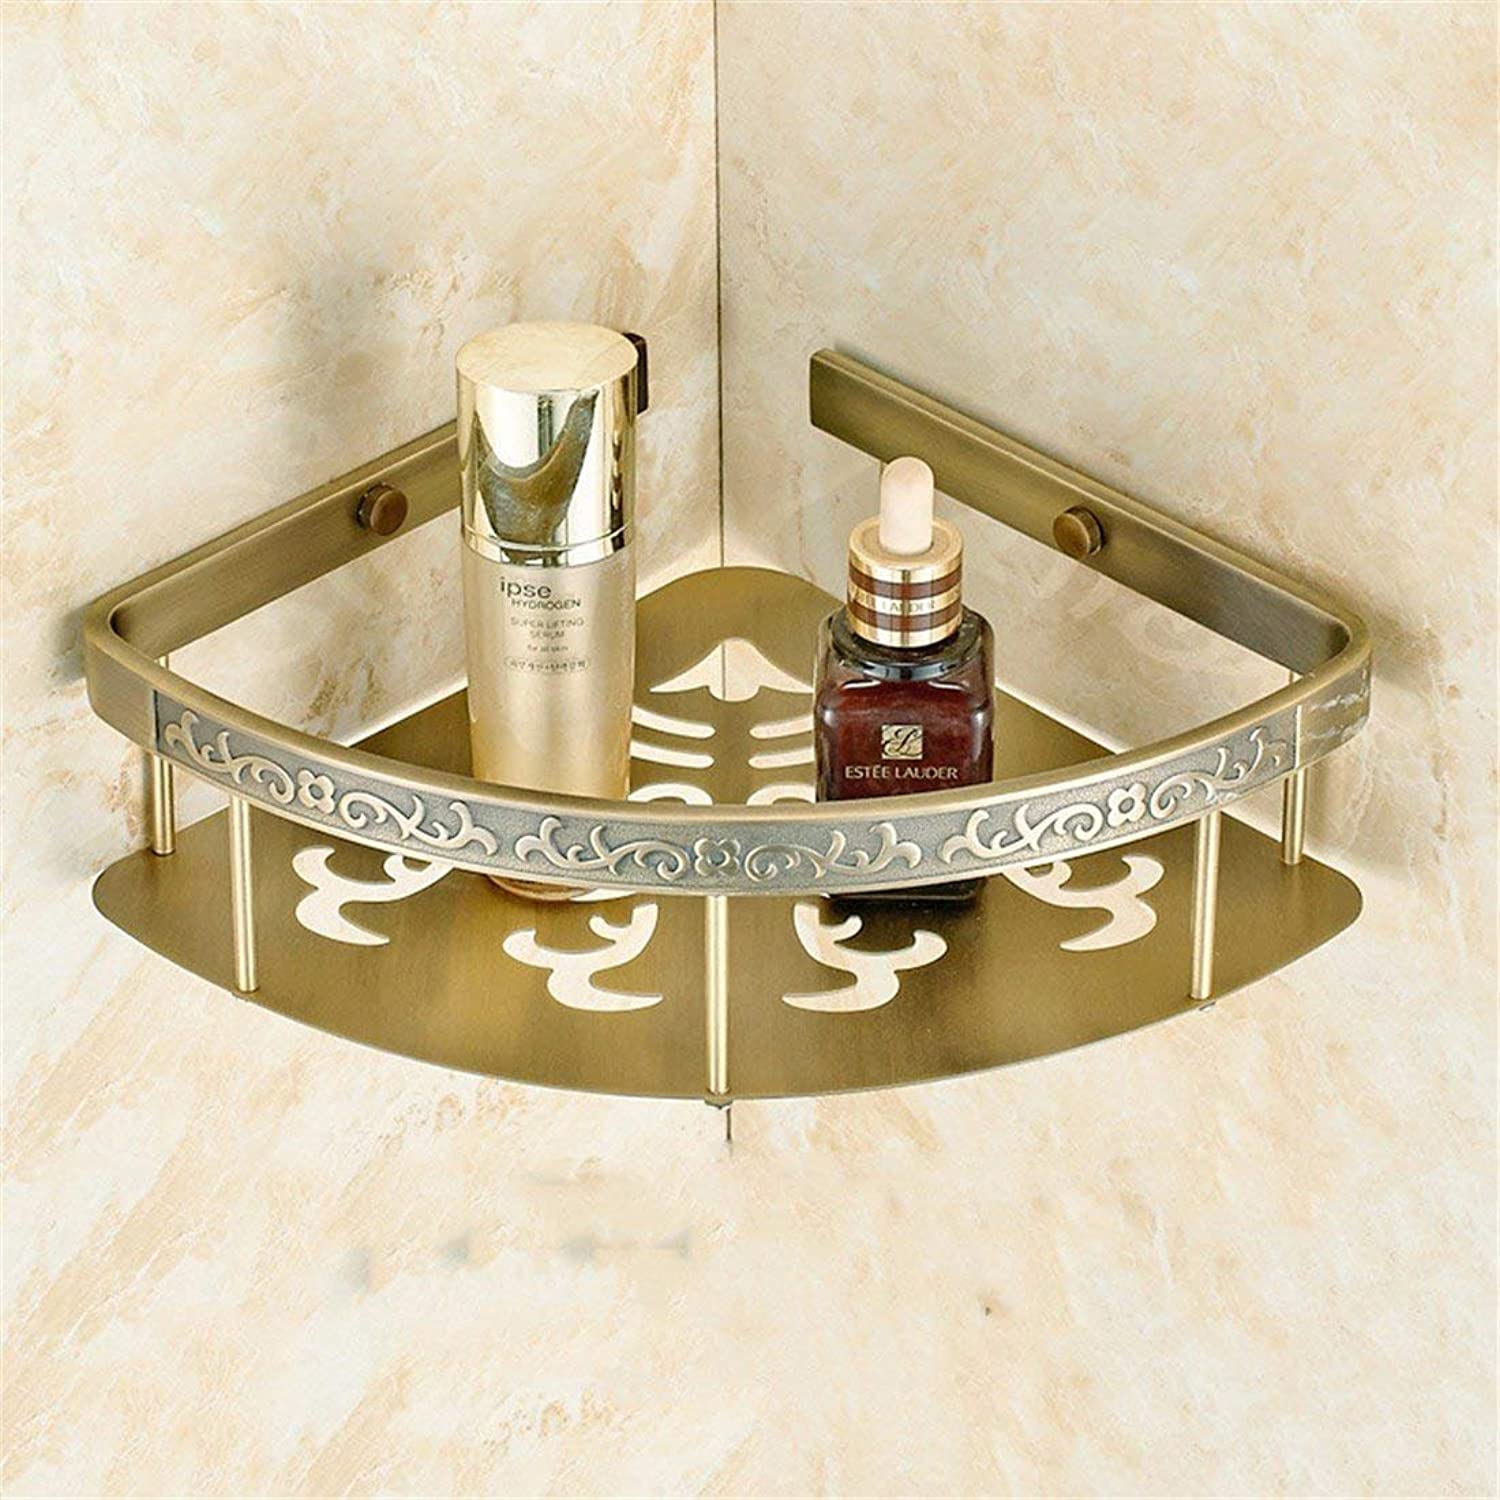 Carved Gulasi Christmas European Green zinc Alloy Base of Accessories of Bathroom Set Soap Toilet Paper,Rack Shopping Cart 1